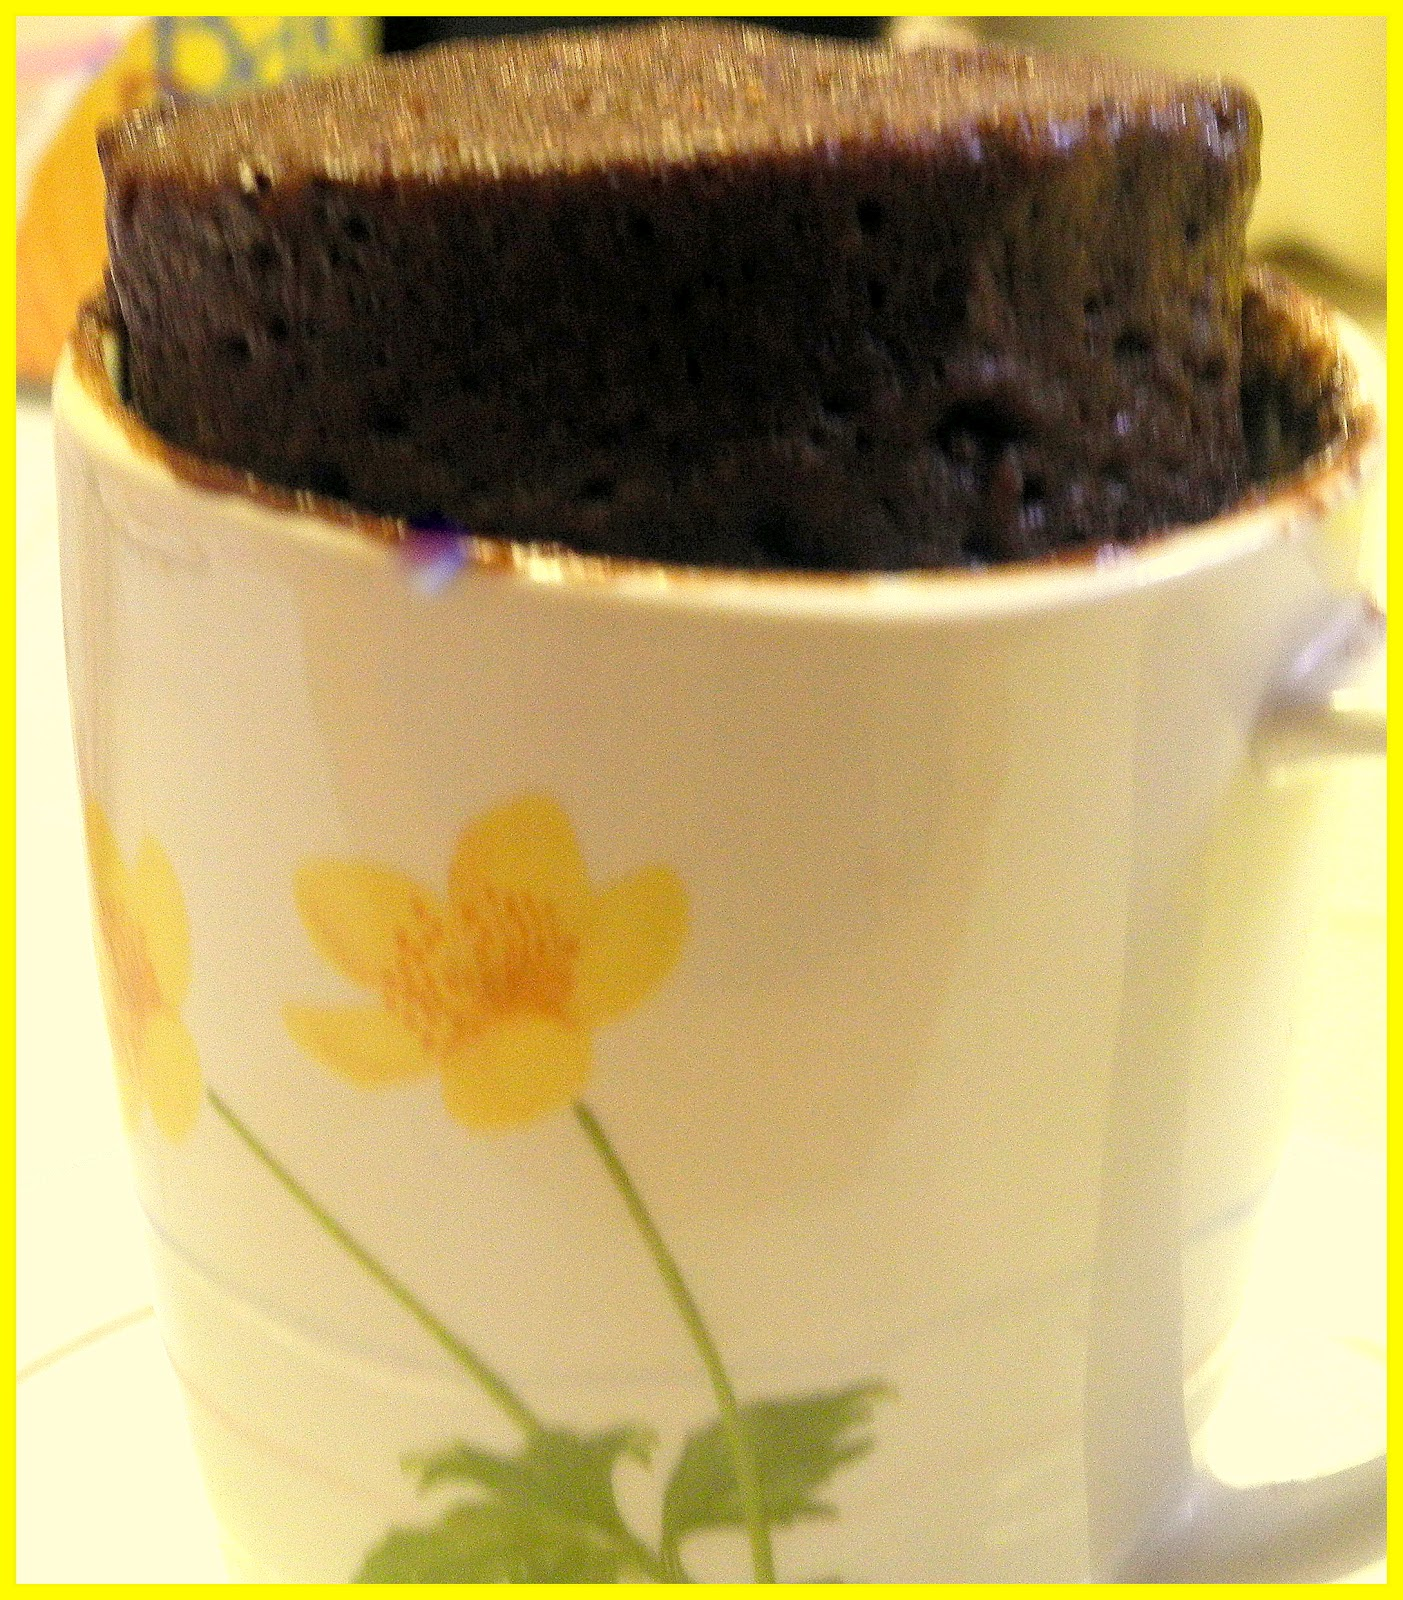 BIZZY BAKES: Microwave Chocolate Cake in a Mug